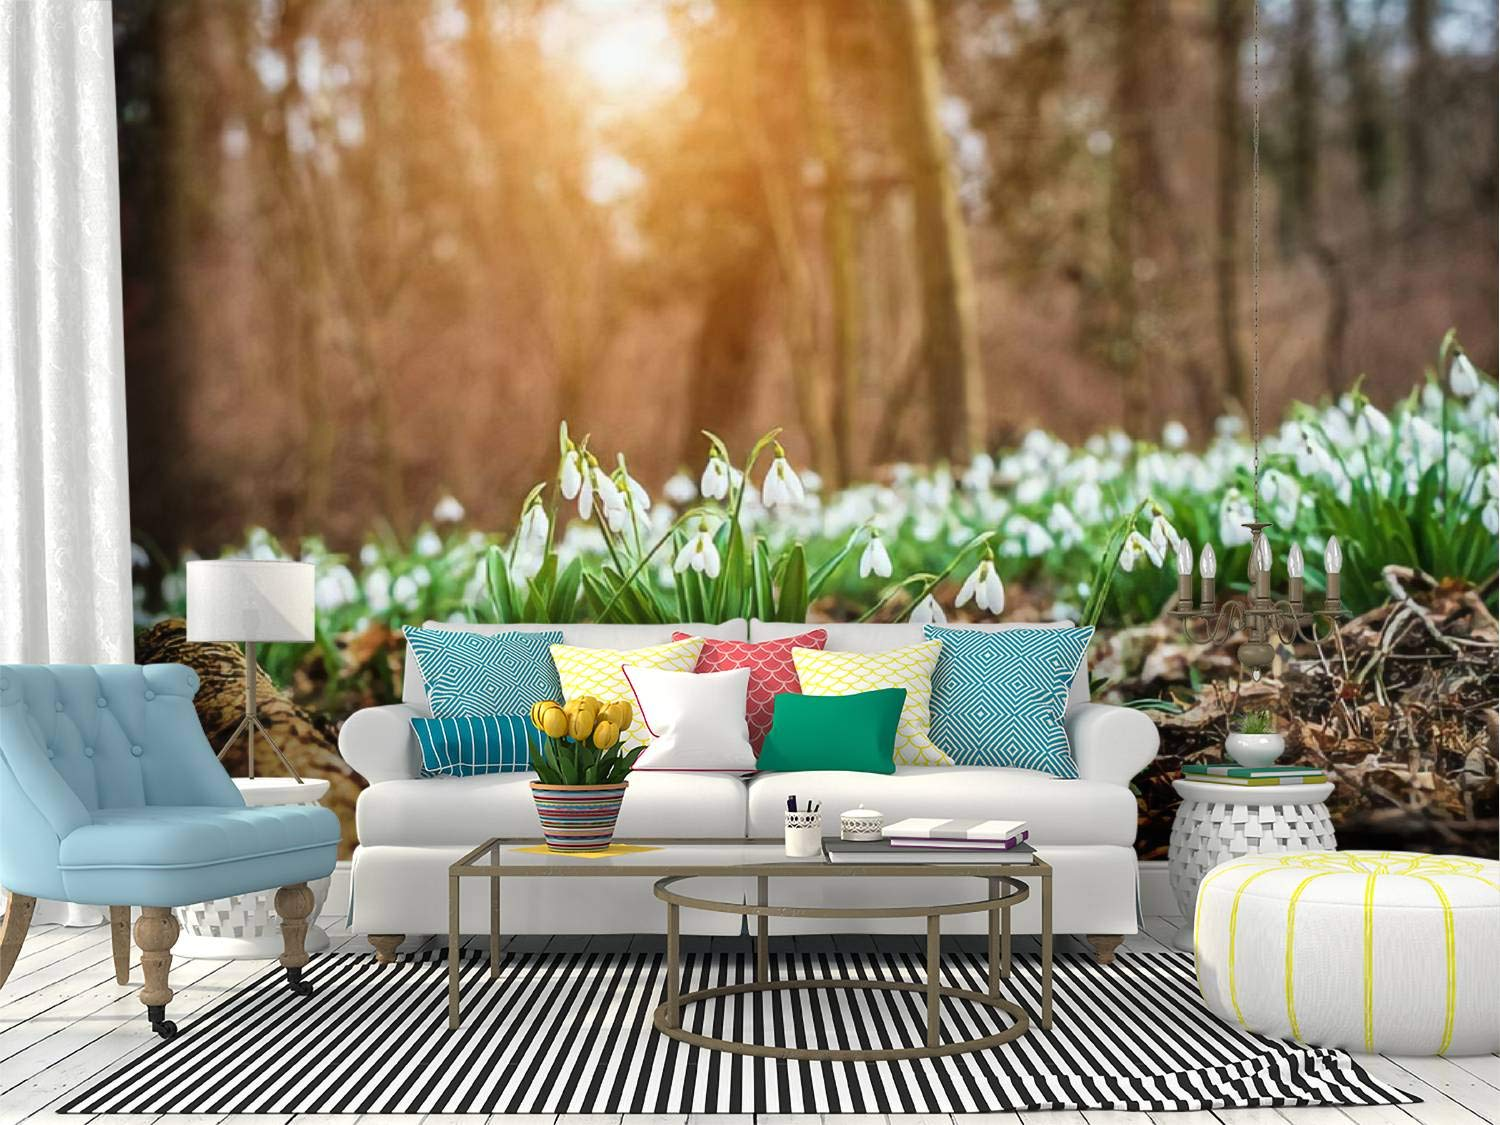 SKIWAMural Self Adhesive Wallpaper Roll Paper Snowdrops Removable Peel and Stick Wallpaper Decorative Wall Mural Posters Home Covering Interior Film